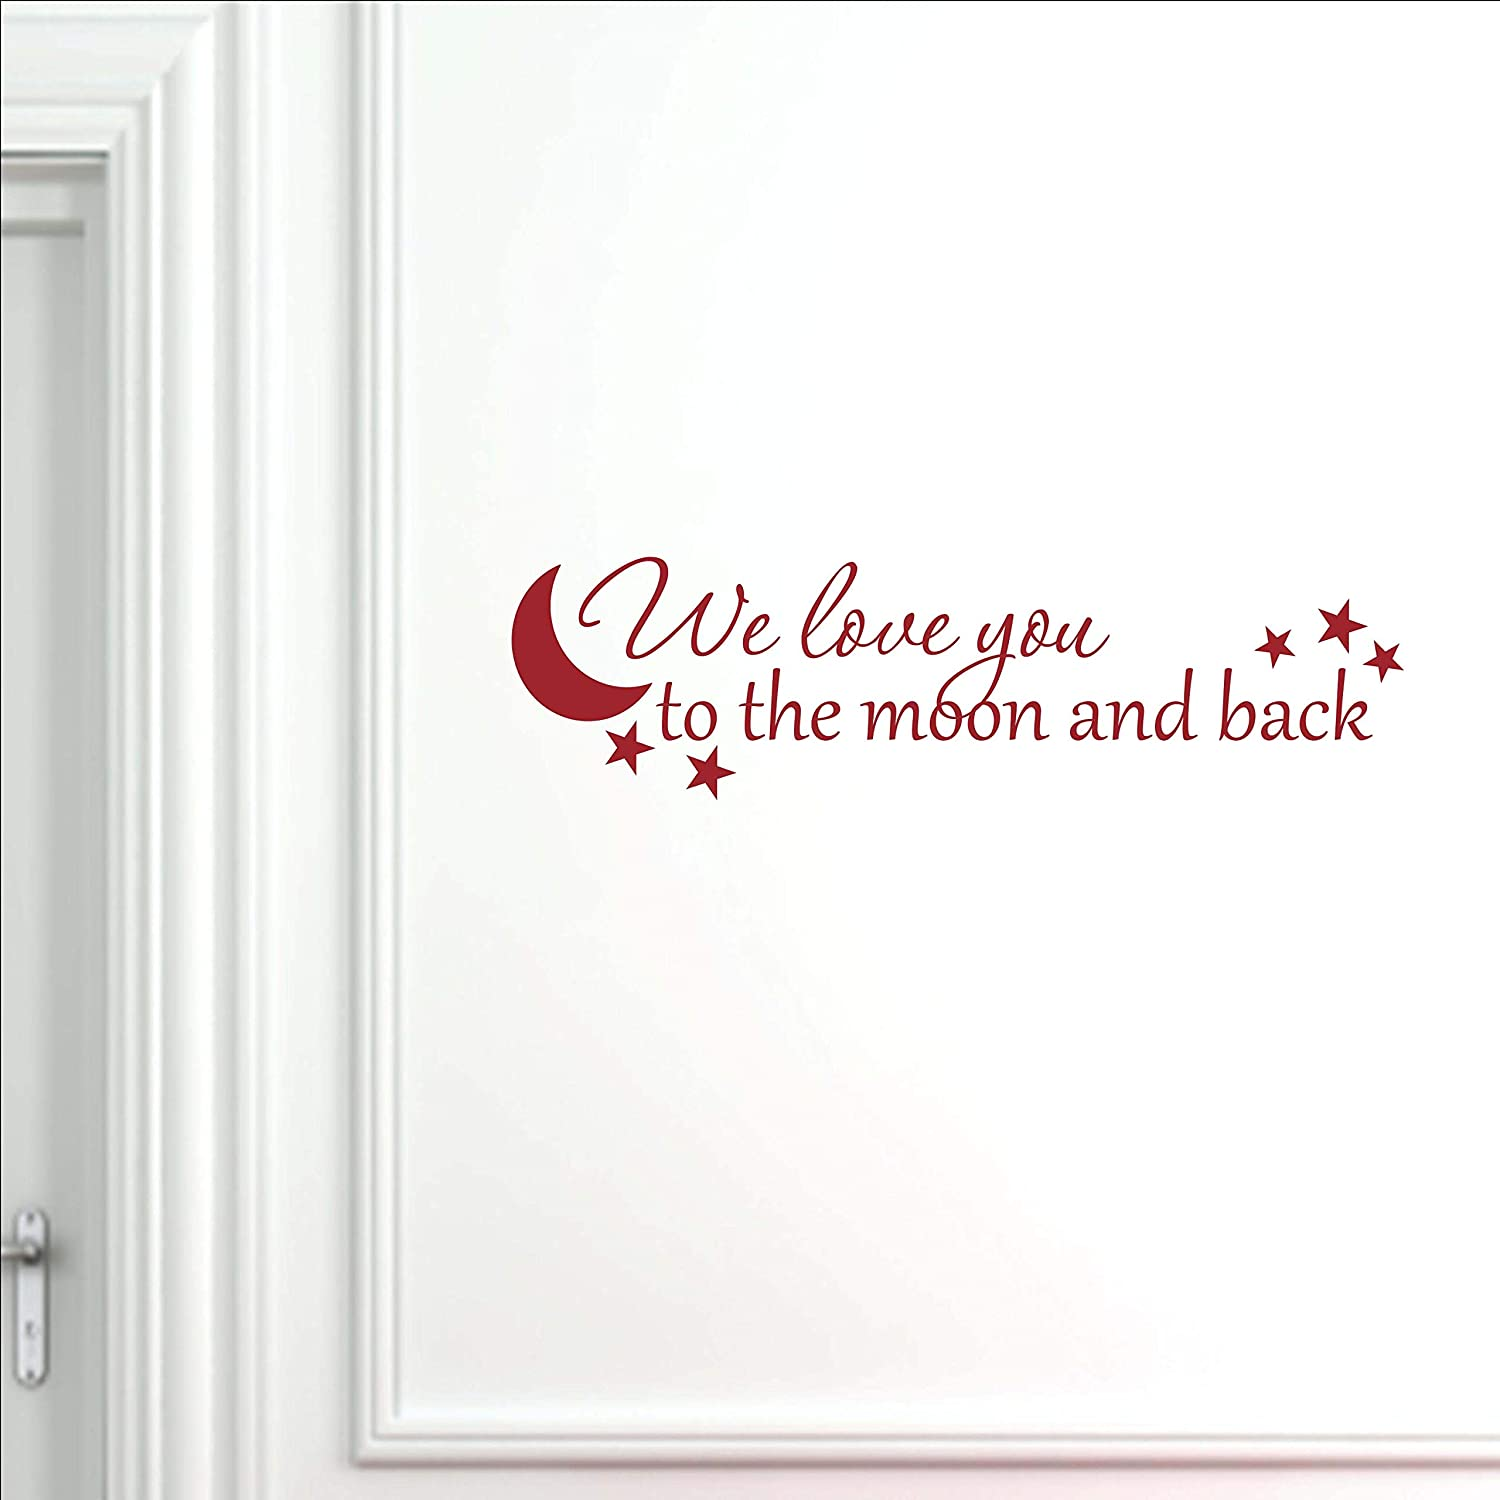 Vinyl Quote Me We Love 4 years warranty You to Back Nursery D outlet and Moon Wall The